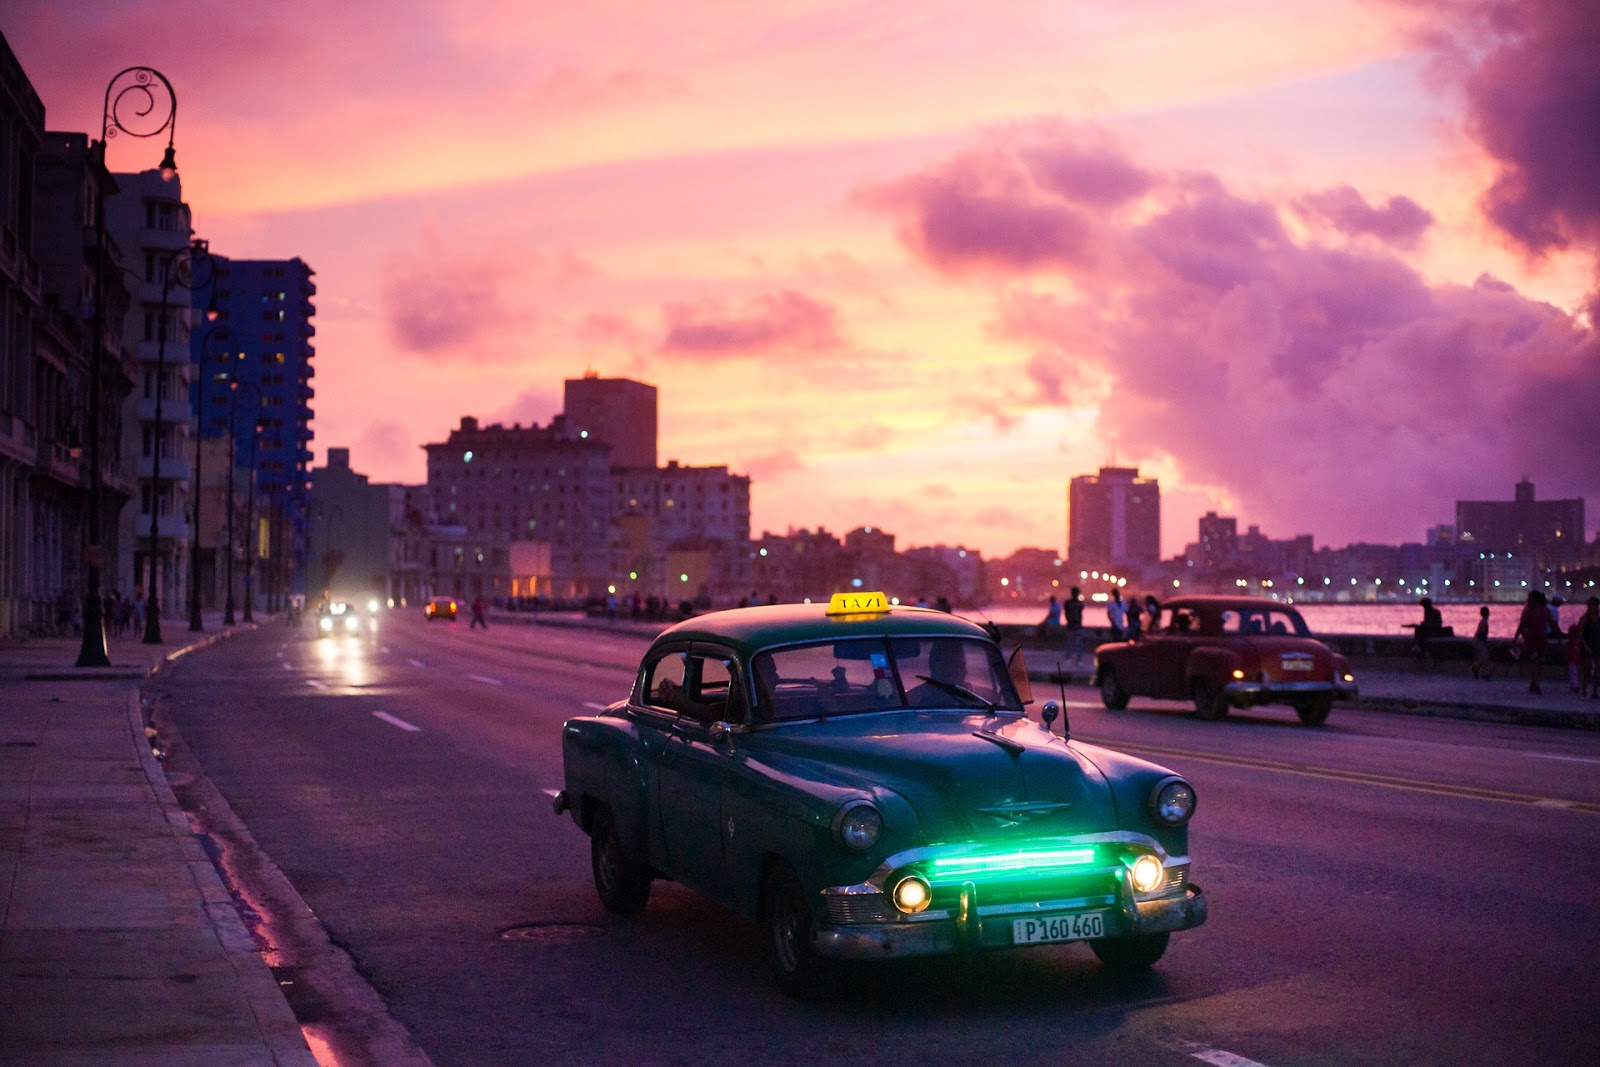 5 things to know before traveling to Cuba